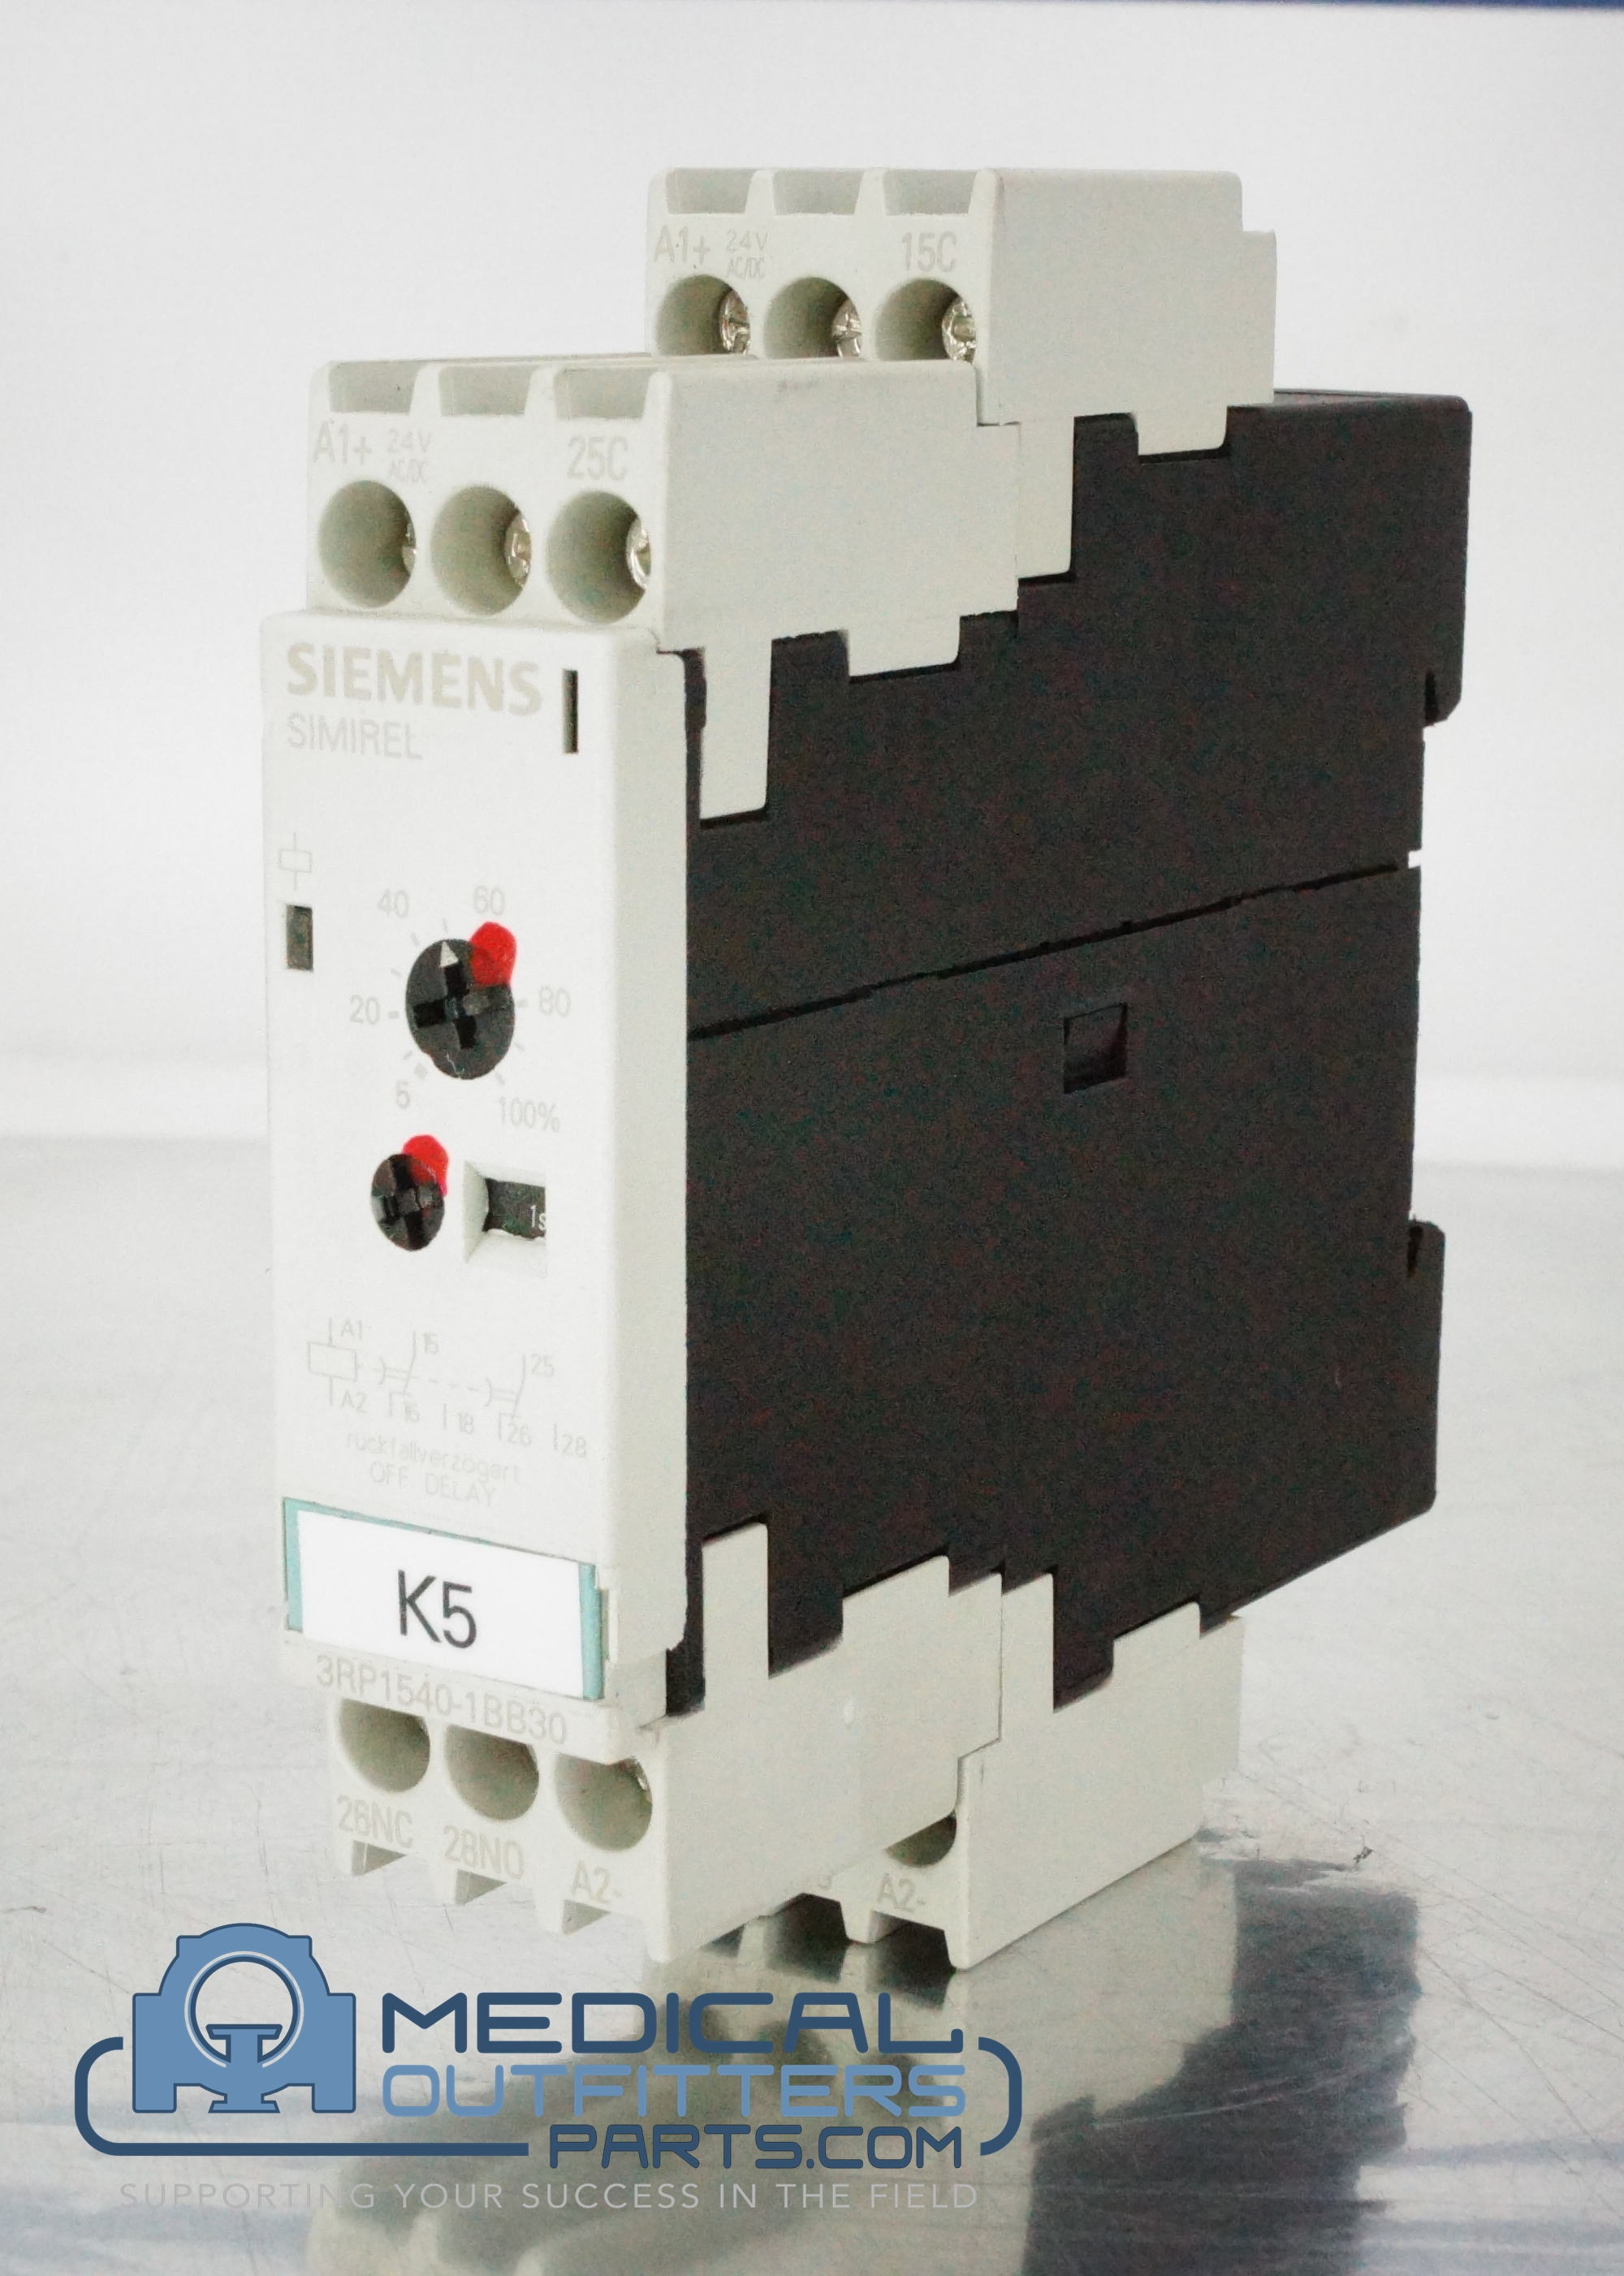 Siemens Sirius Time Relay - Off Delay, 1 C, 7 Ranges 0,05...100 S AC/DC 24 V, With LED, PN 3RP1540-1BB30